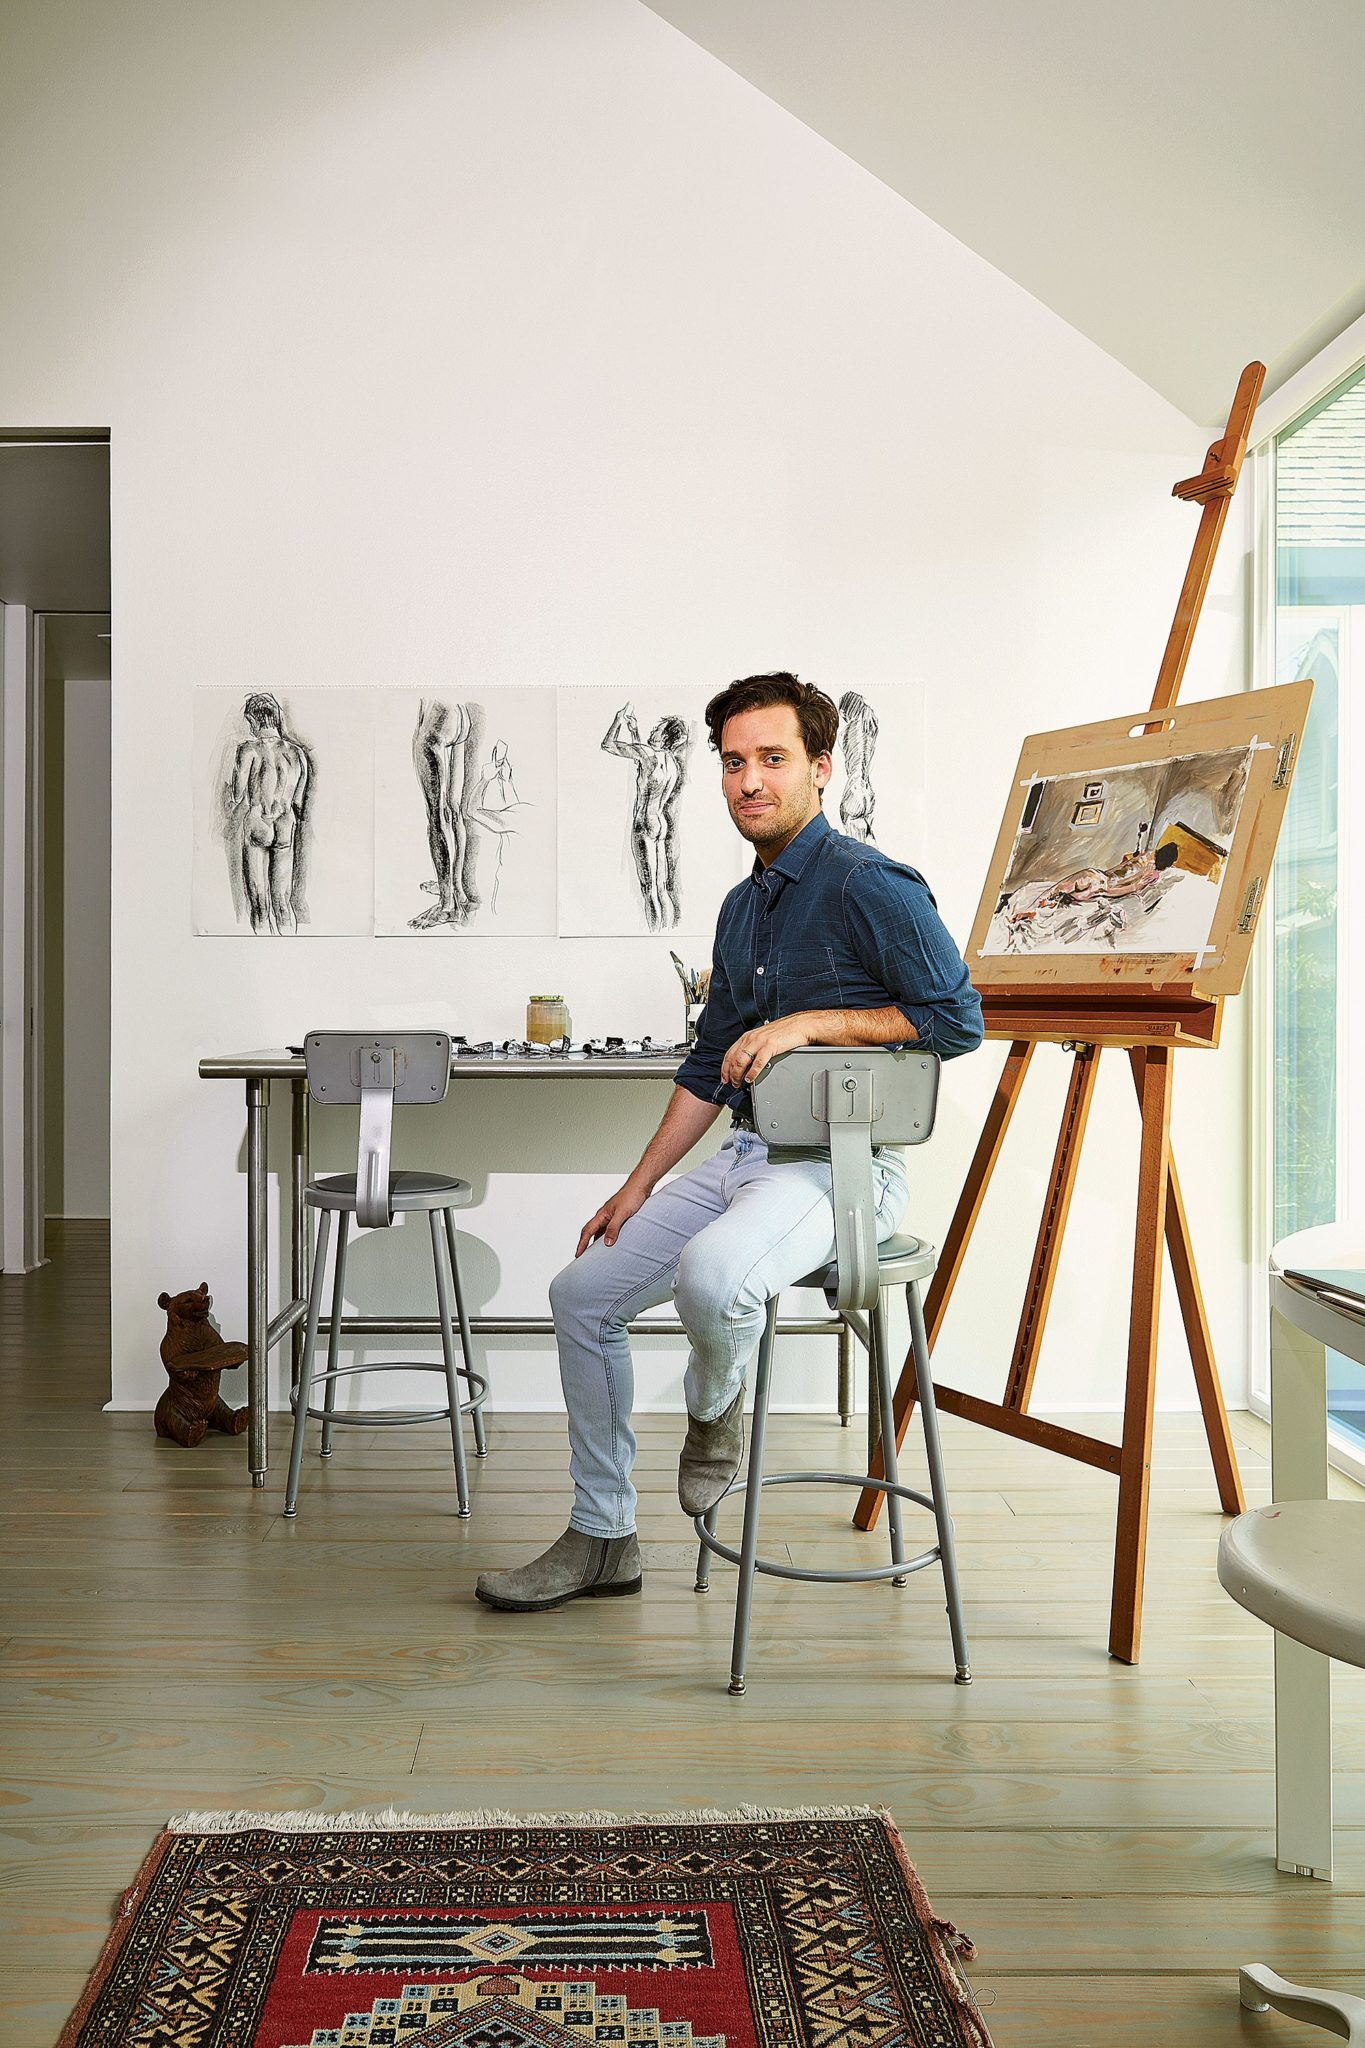 Luis de las Cuevas in his studio. (Photo by Pär Bengtsson)